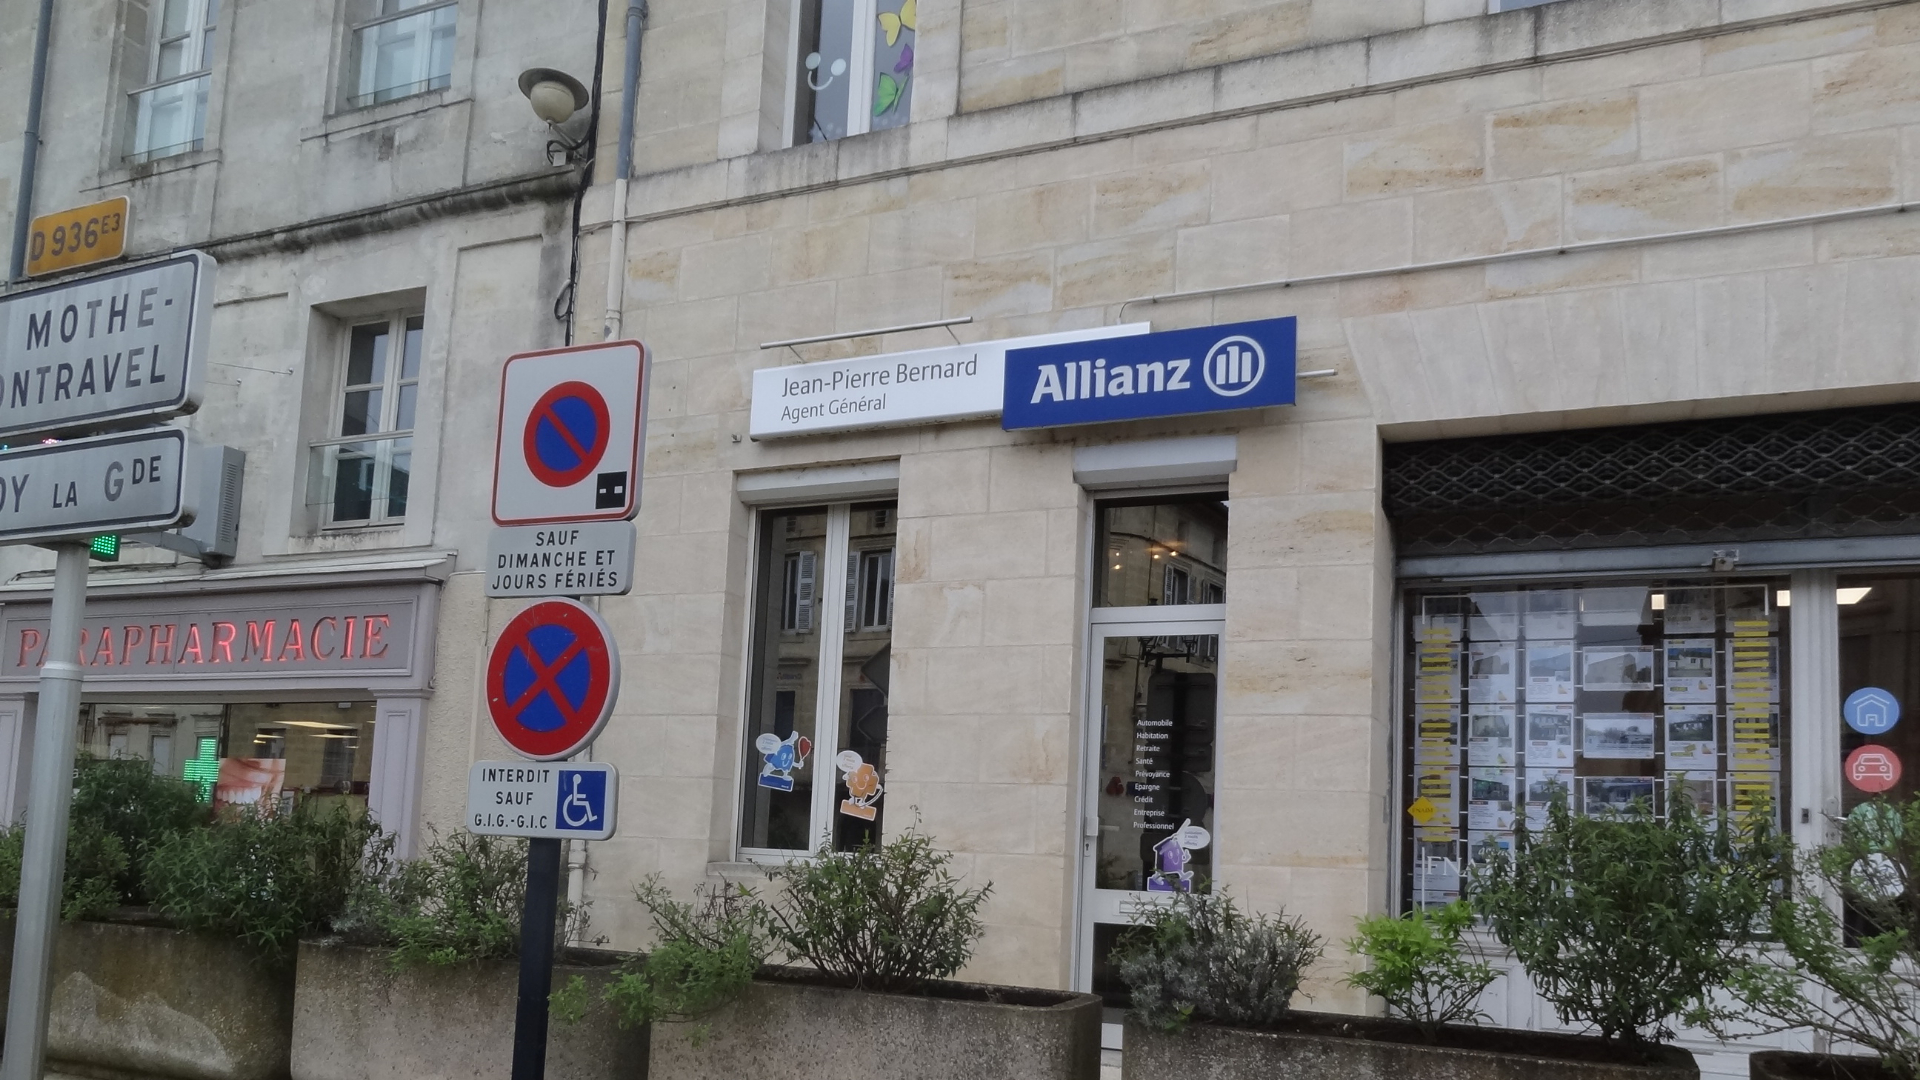 Allianz CASTILLON - Jean-pierre BERNARD